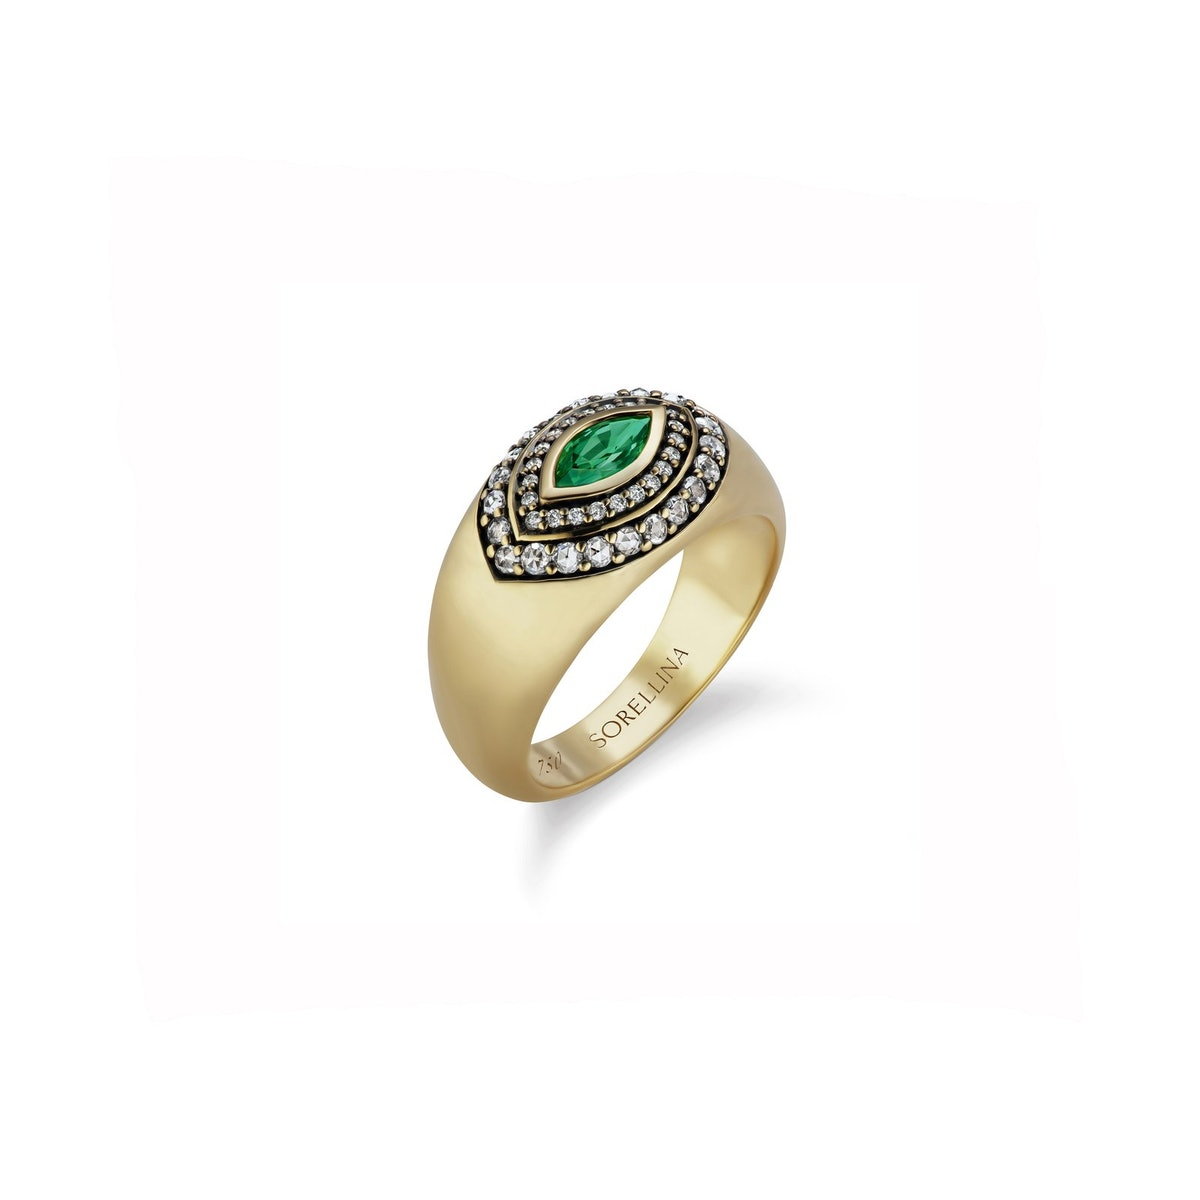 Axl Marquise Ring from Sorellina.